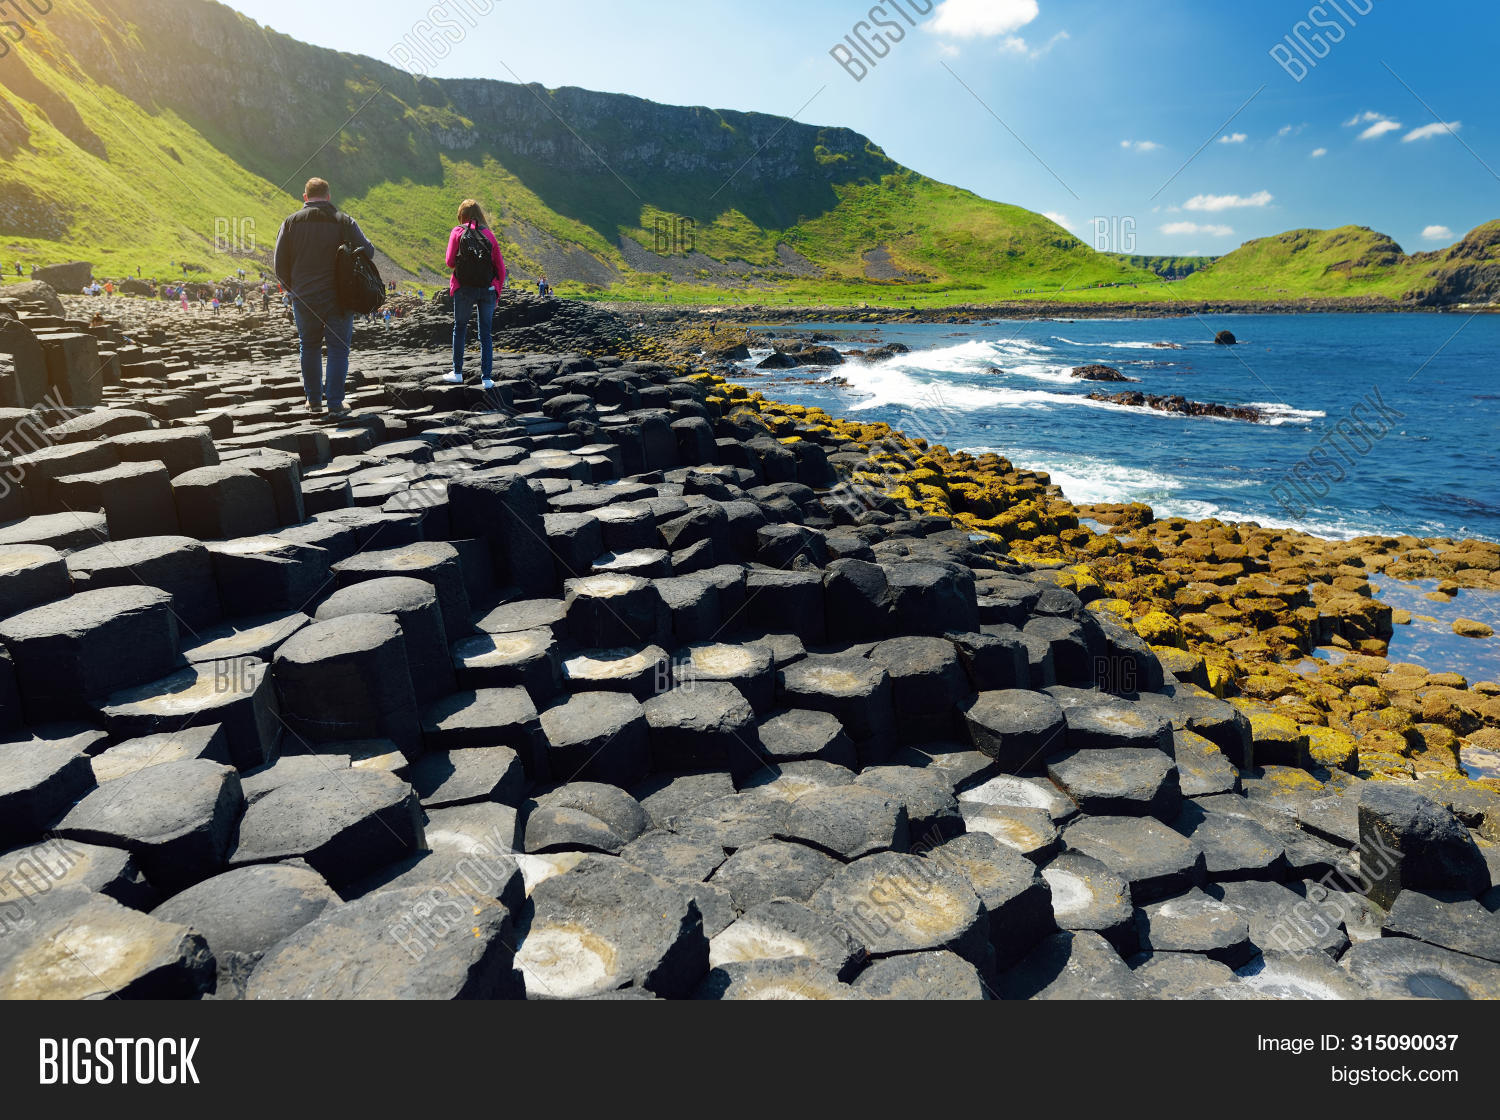 antrim,area,atlantic,attraction,basalt,belfast,causeway,cliff,coast,coastal,eruption,europe,fissure,formation,geological,geology,giant,heritage,hexagon,hexagonal,ireland,irish,kingdom,landmark,landscape,lava,legend,national,natural,north,northern,ocean,rock,scenery,scenic,sea,seascape,shore,site,solidified,stepping,stone,tourism,tourist,travel,uk,unesco,united,volcanic,wonder